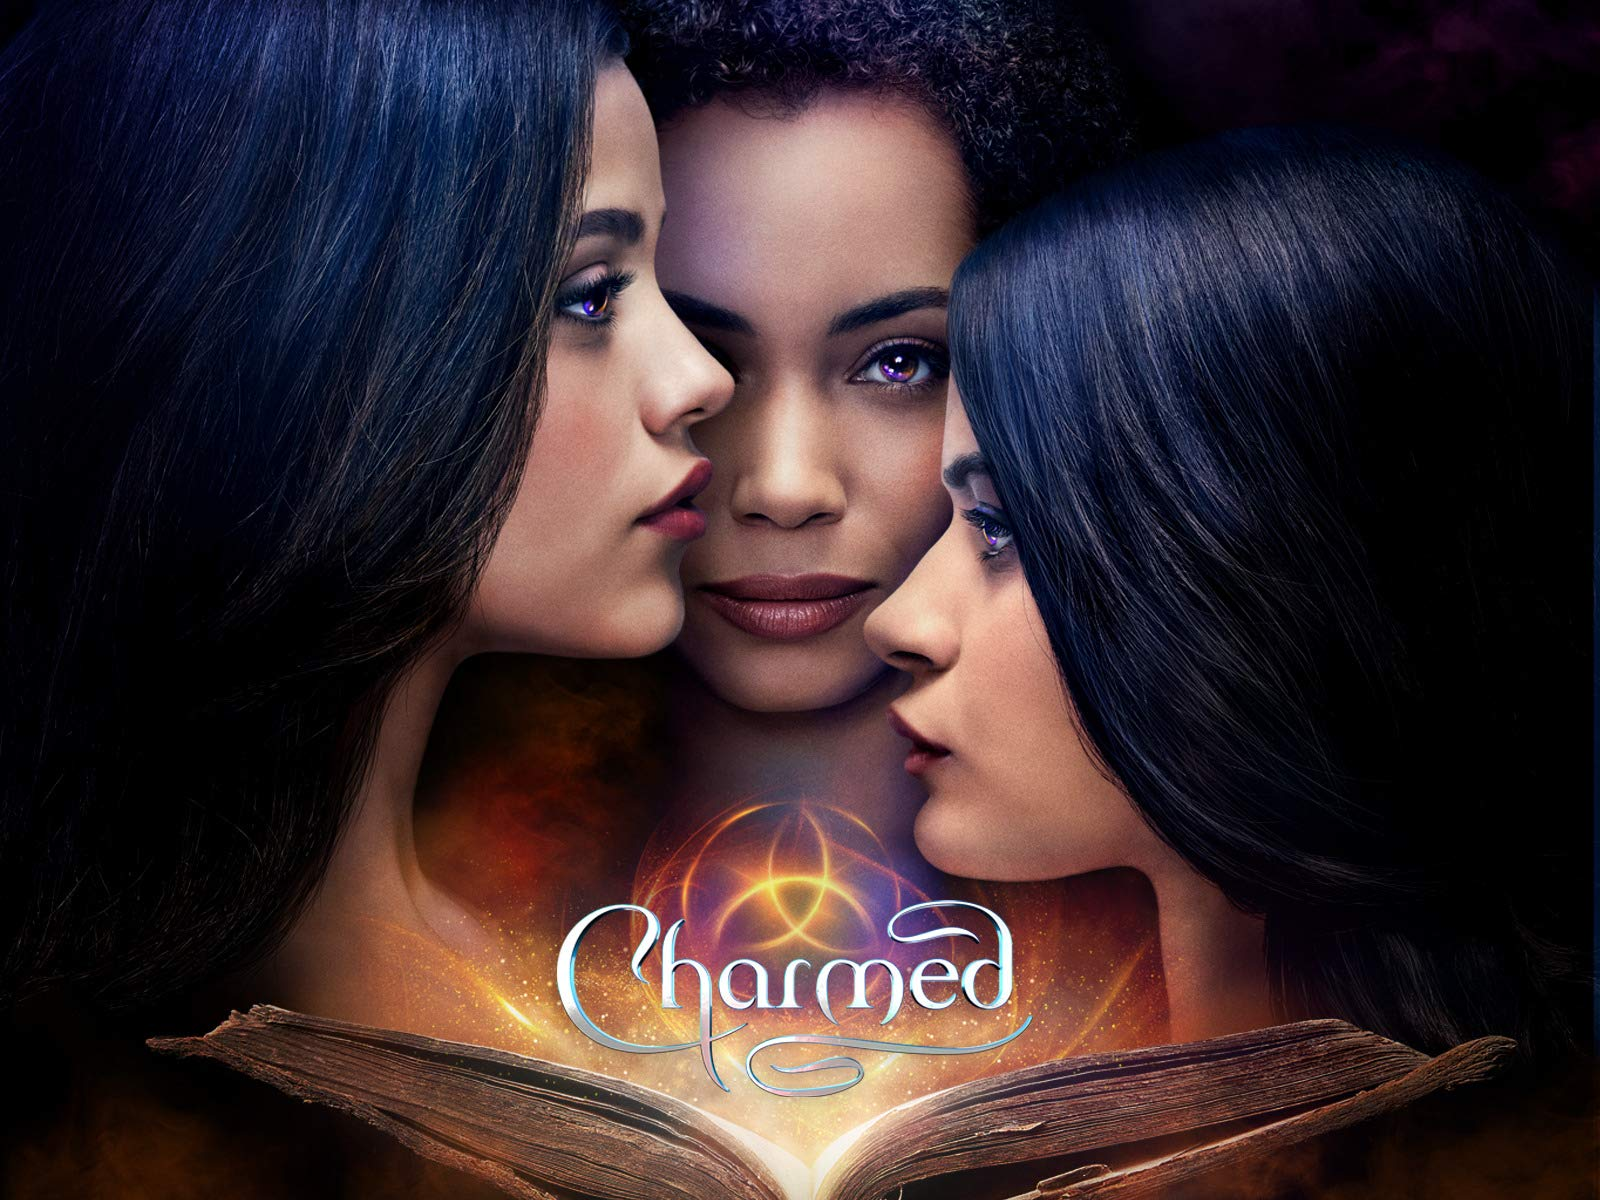 New Charmed gdr